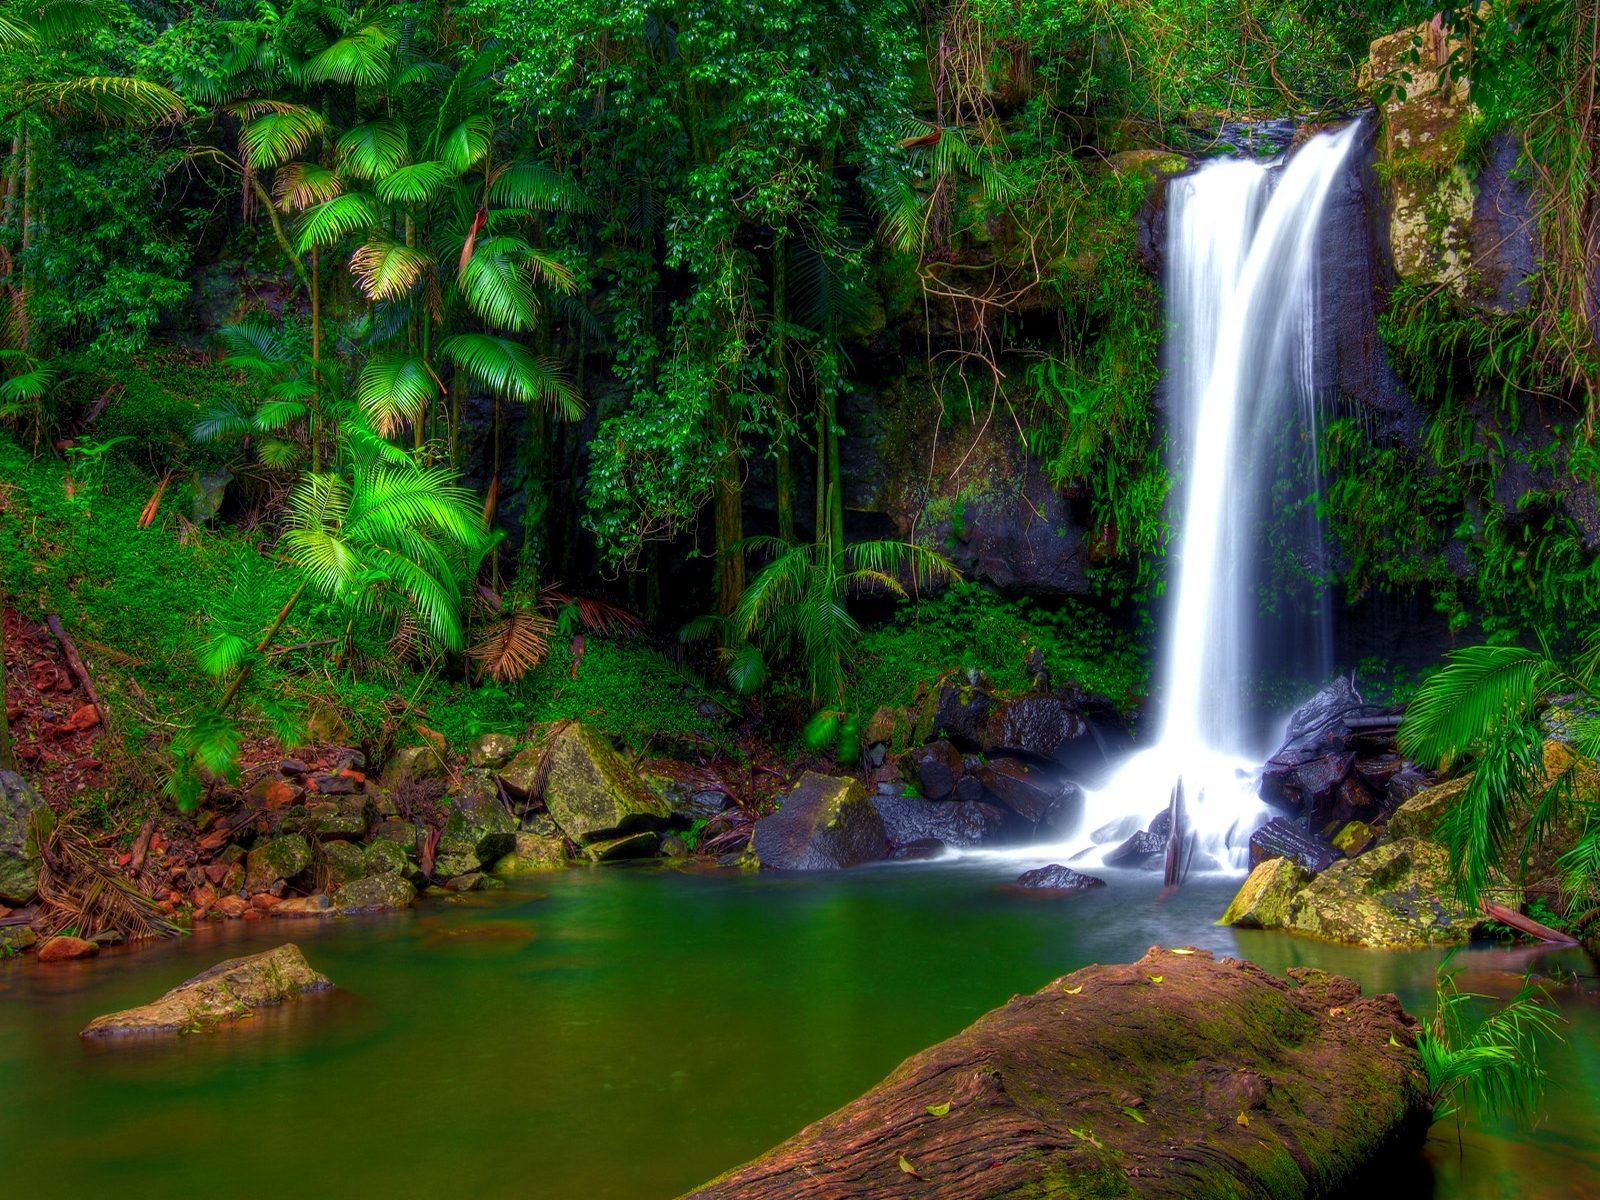 Blue Nile Falls Wallpaper Wonderful Tropical Waterfall Jungle Green Tropical